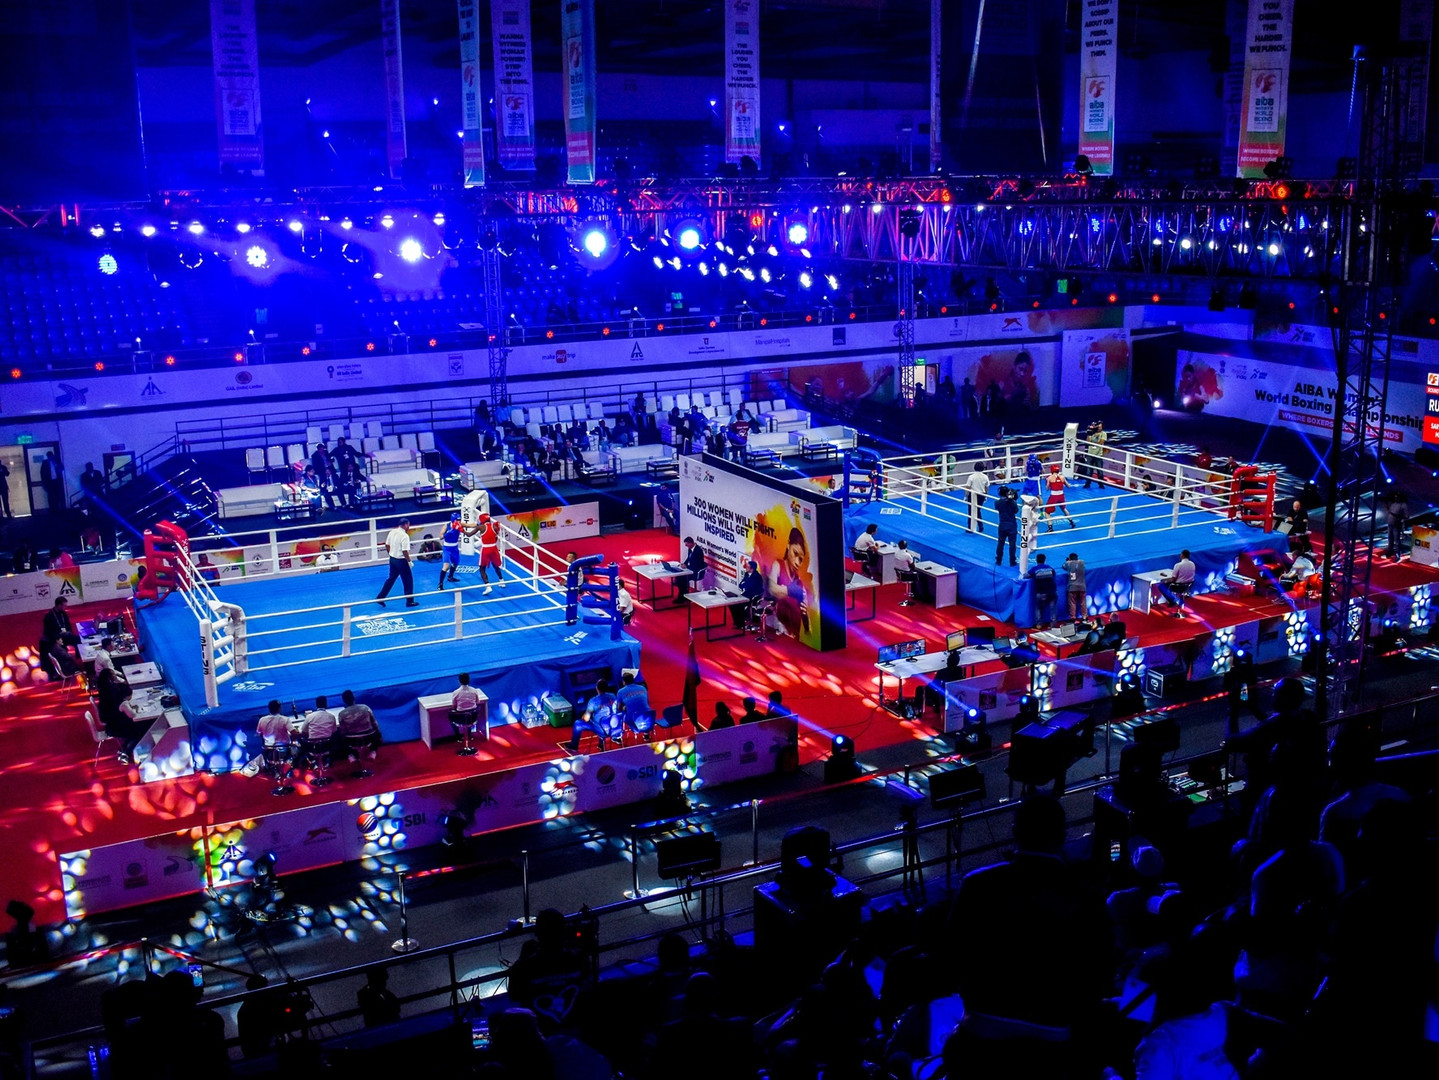 Sporting Agenda Tickets & VIP Hospitality Boxing